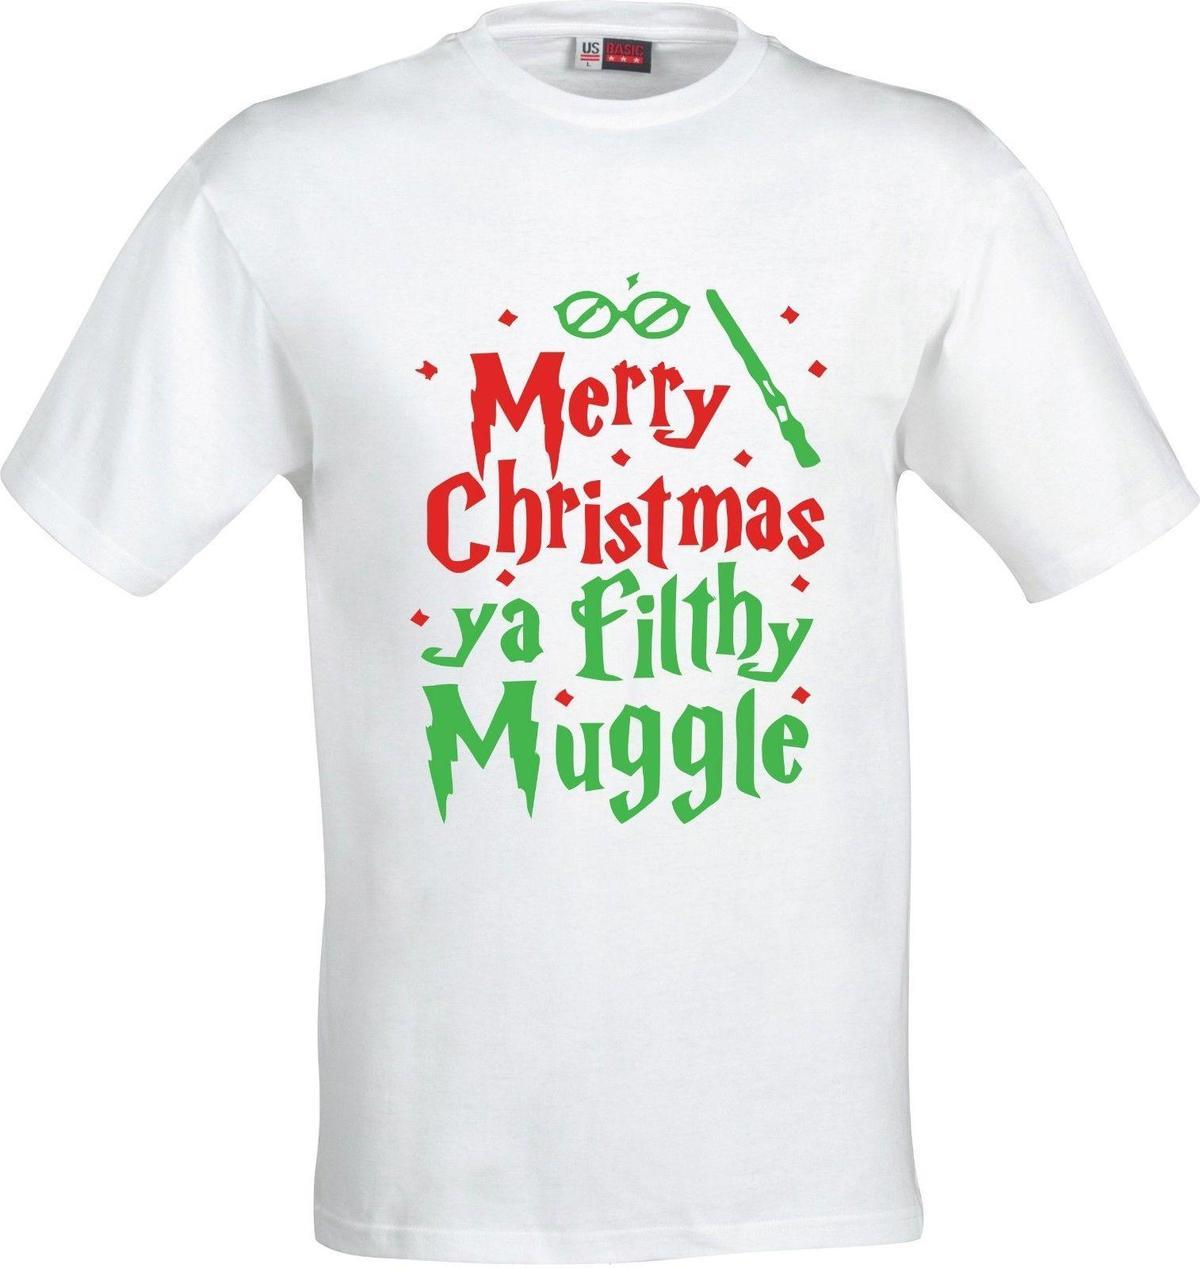 cc0617b56 MERRY CHRISTMAS YOU FILTHY MUGGLE HARRY POTTER FULL COLOR SUBLIMATION T  SHIRT Long Sleeve Tee Shirts Design Your Own T Shirts From Linnan06,  $14.67| DHgate.